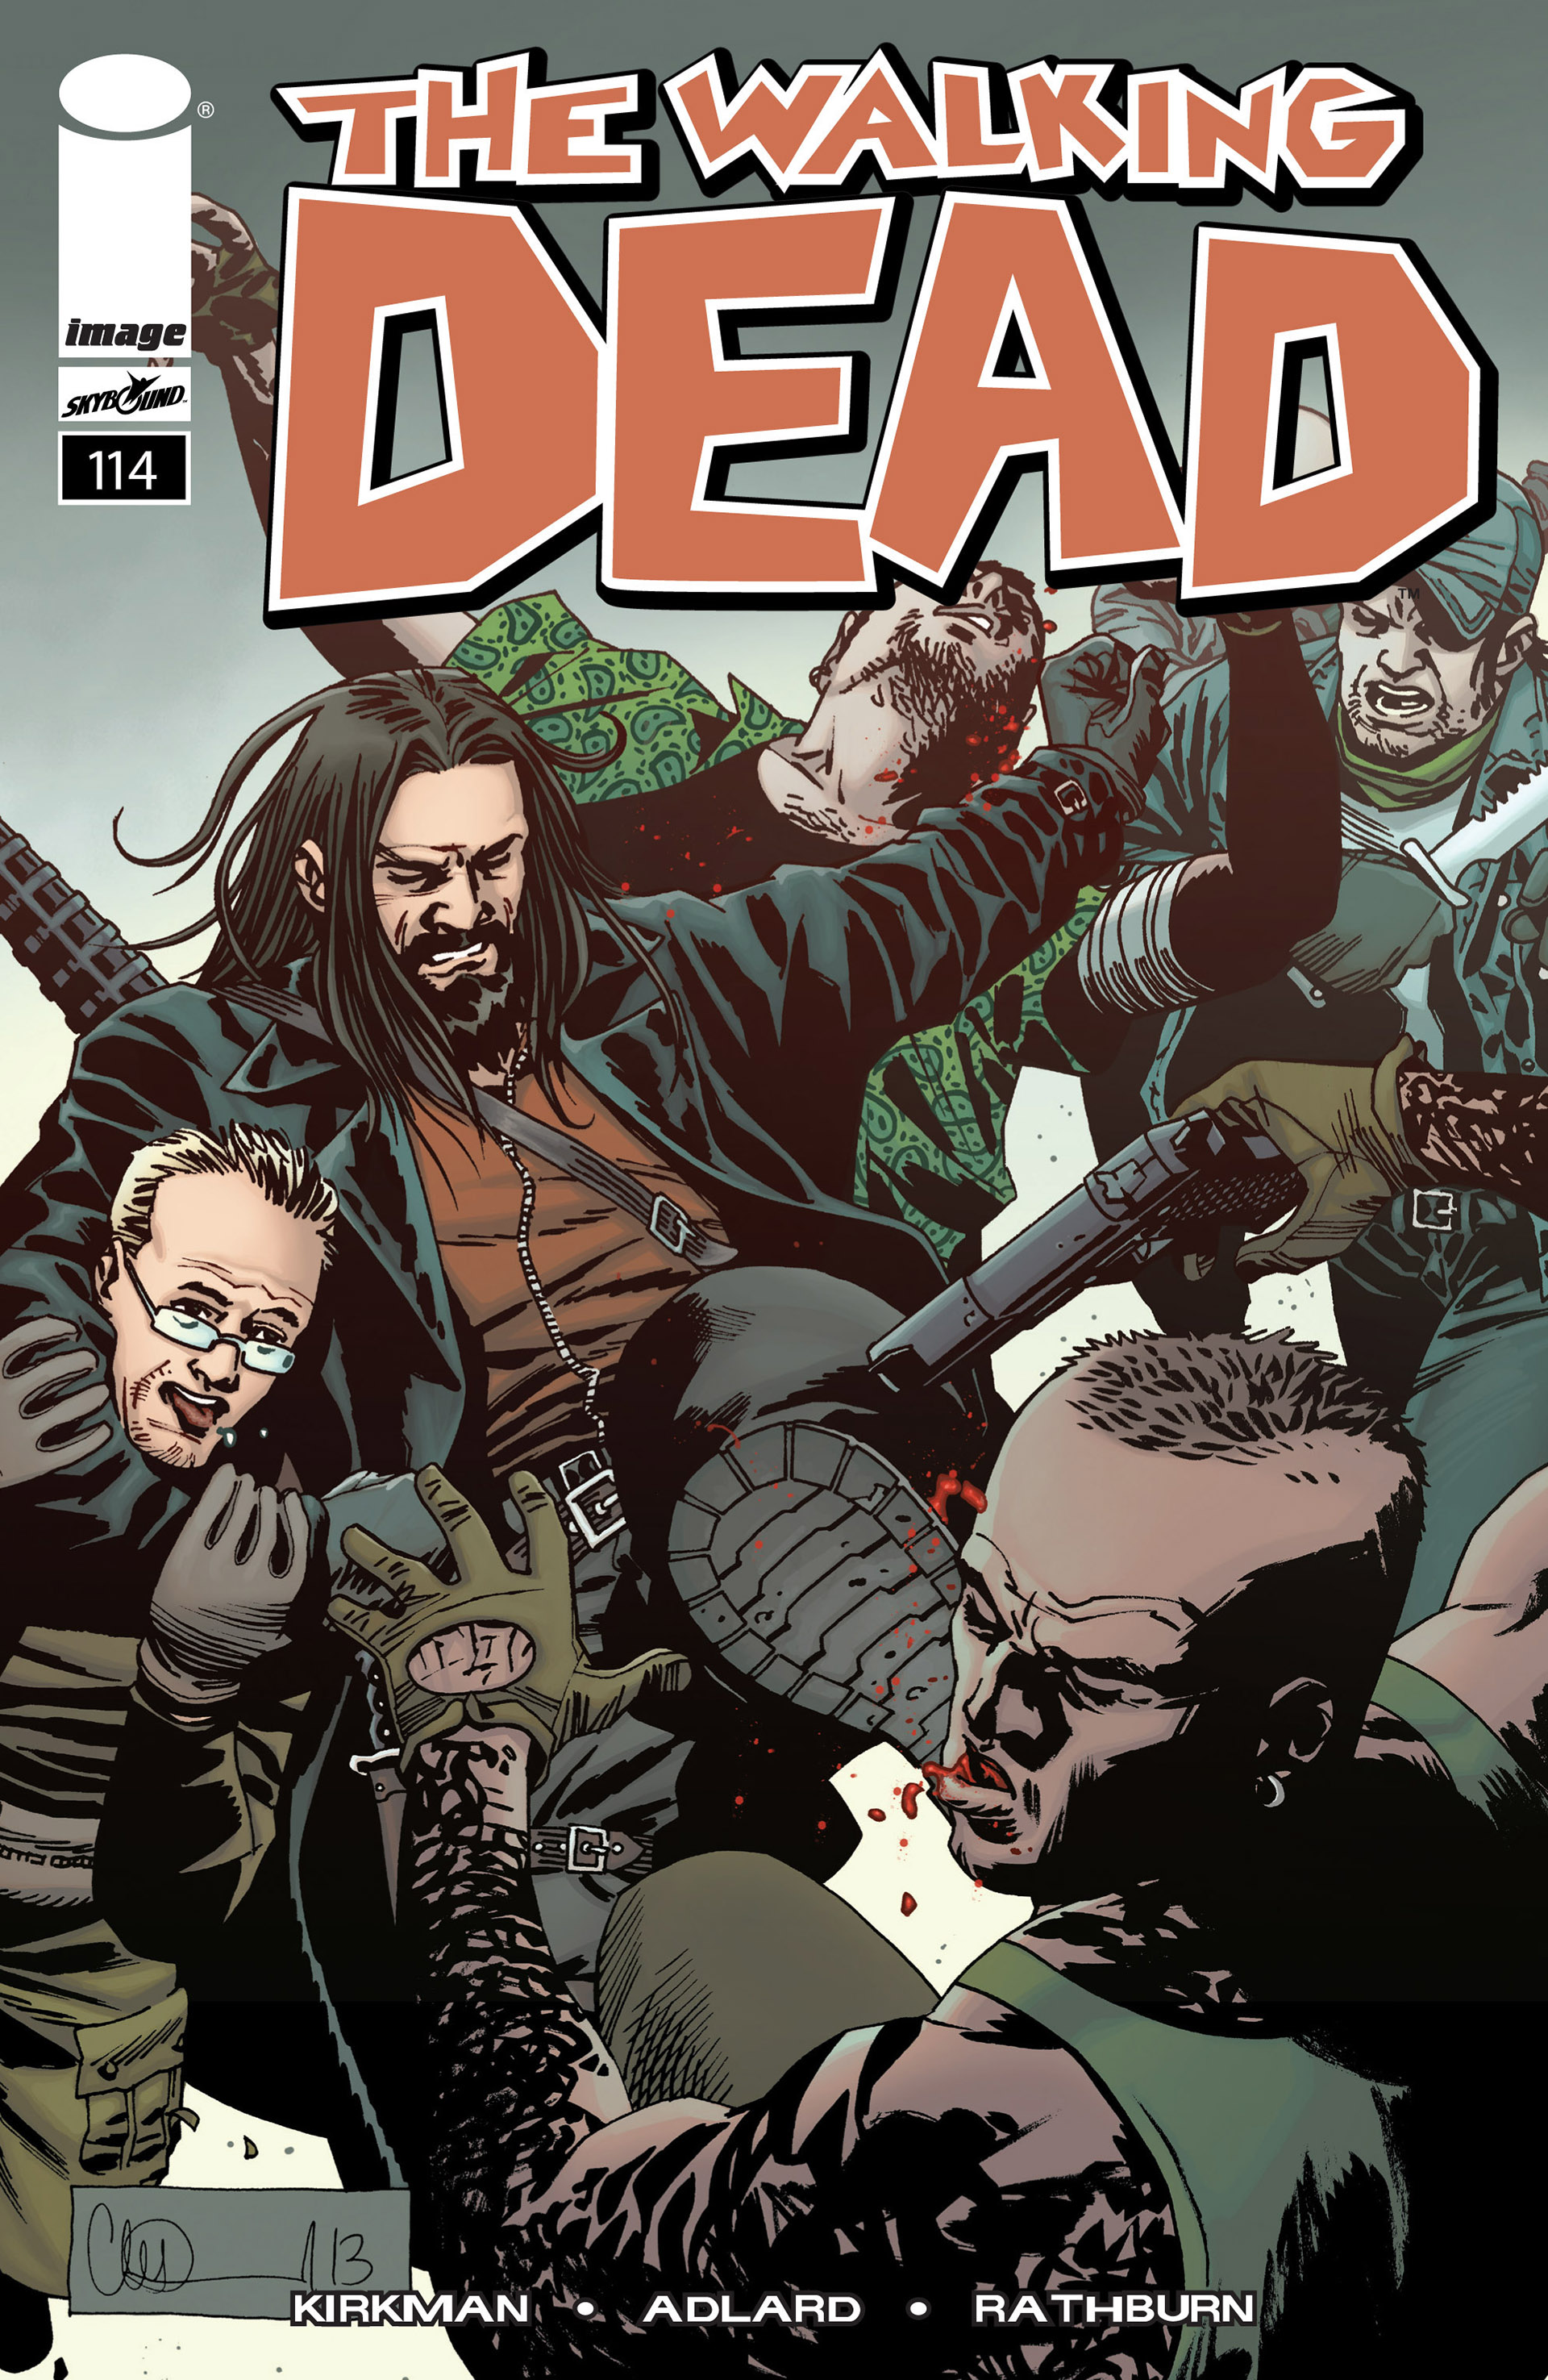 The Walking Dead 114 Page 1